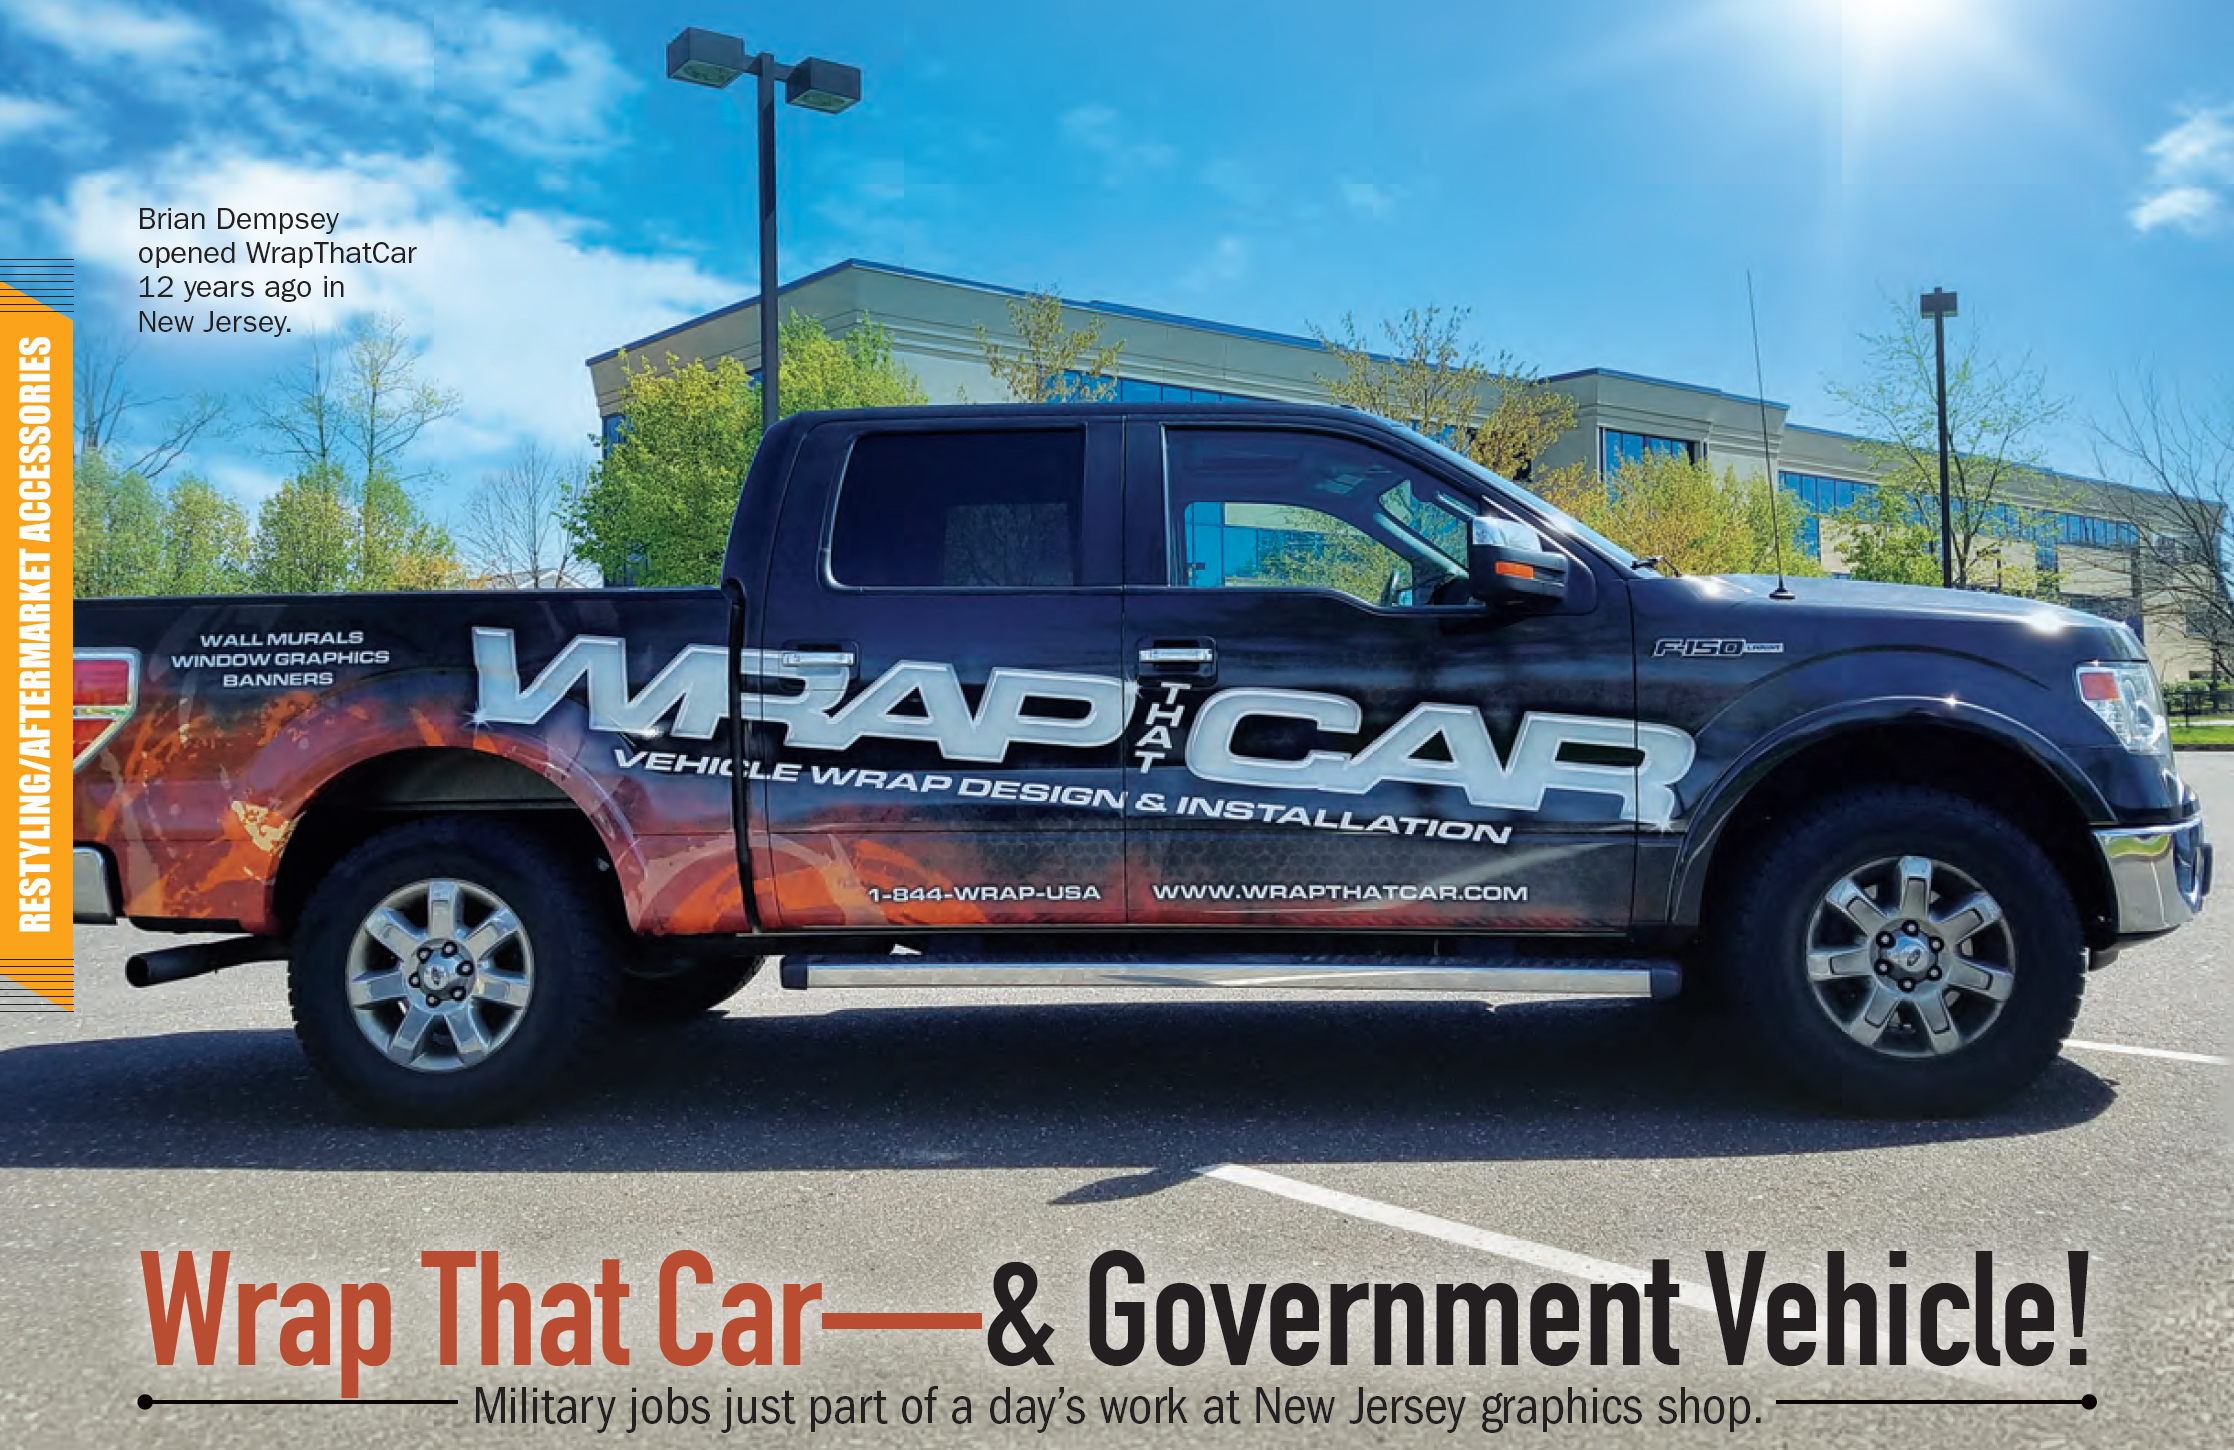 WrapThatCar | Professional Wrap Design, Printing & Certified